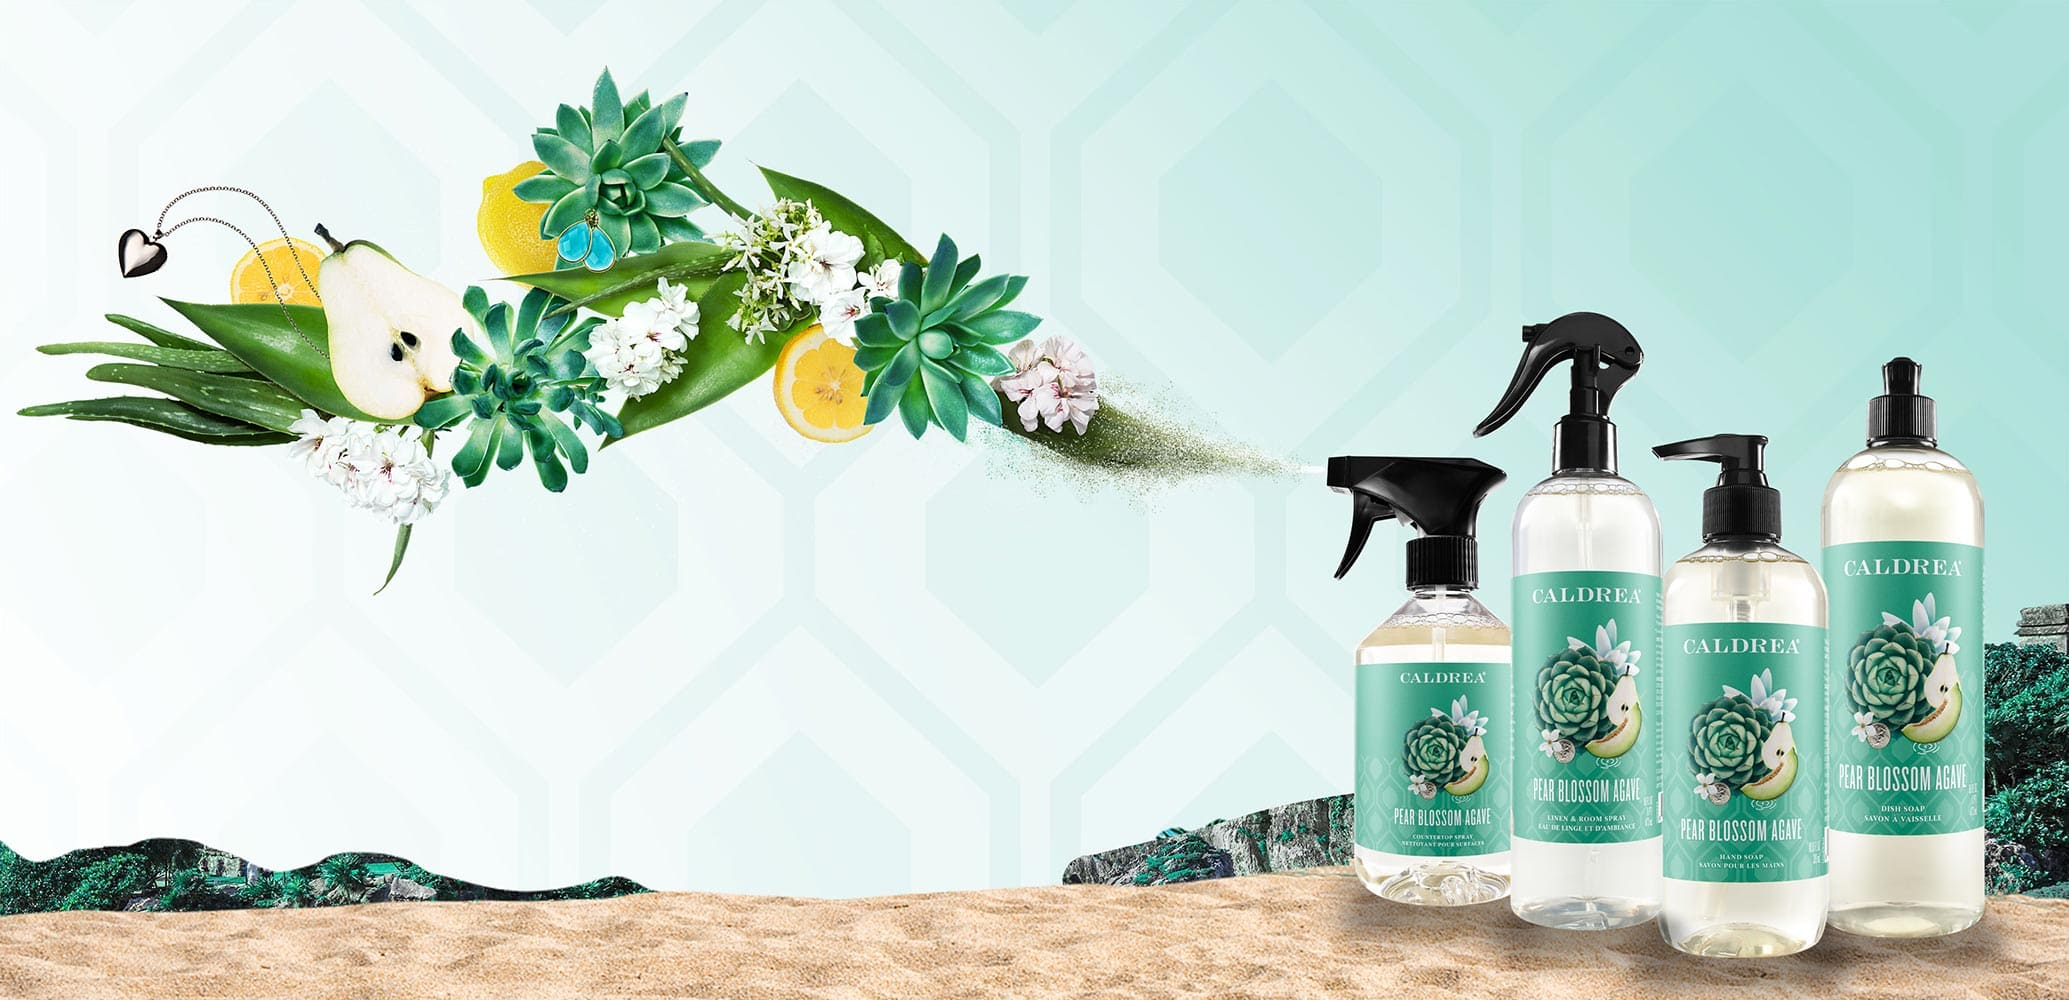 A collection of countertop spray, dish soap, and more spray out elements that encompass our scent: Pear Blossom Agave.